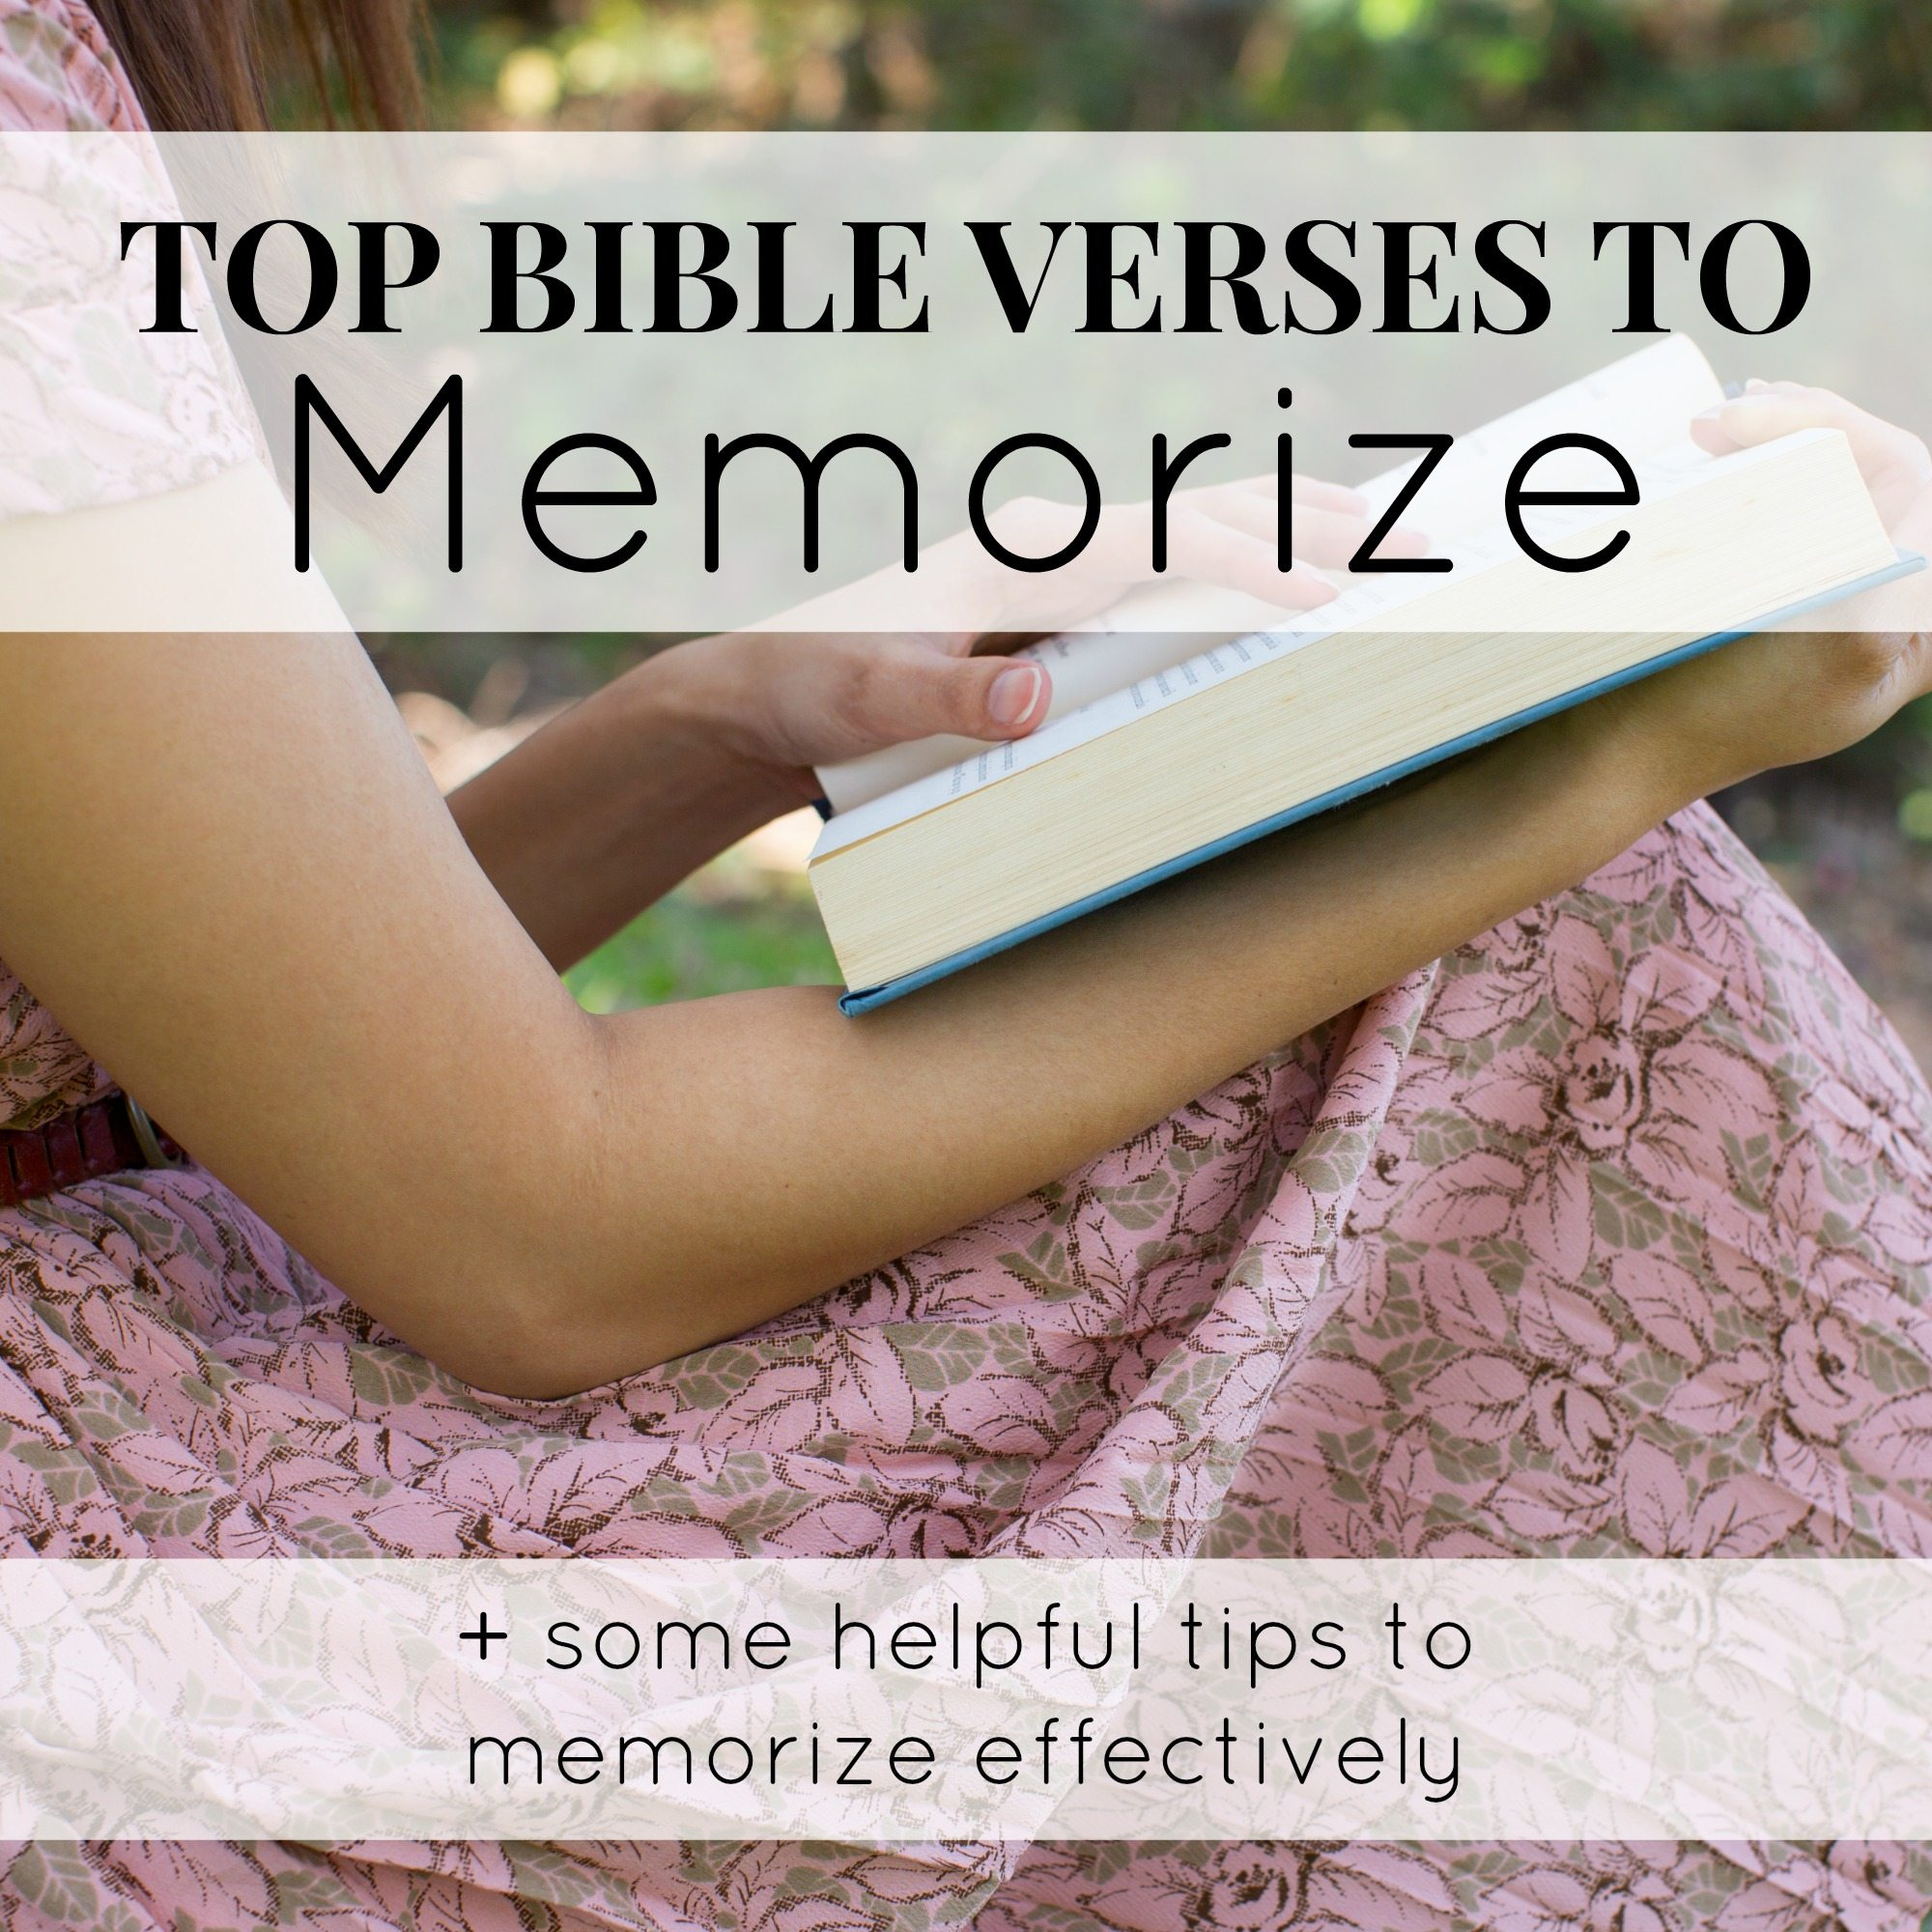 Top Bible Verses to Memorize